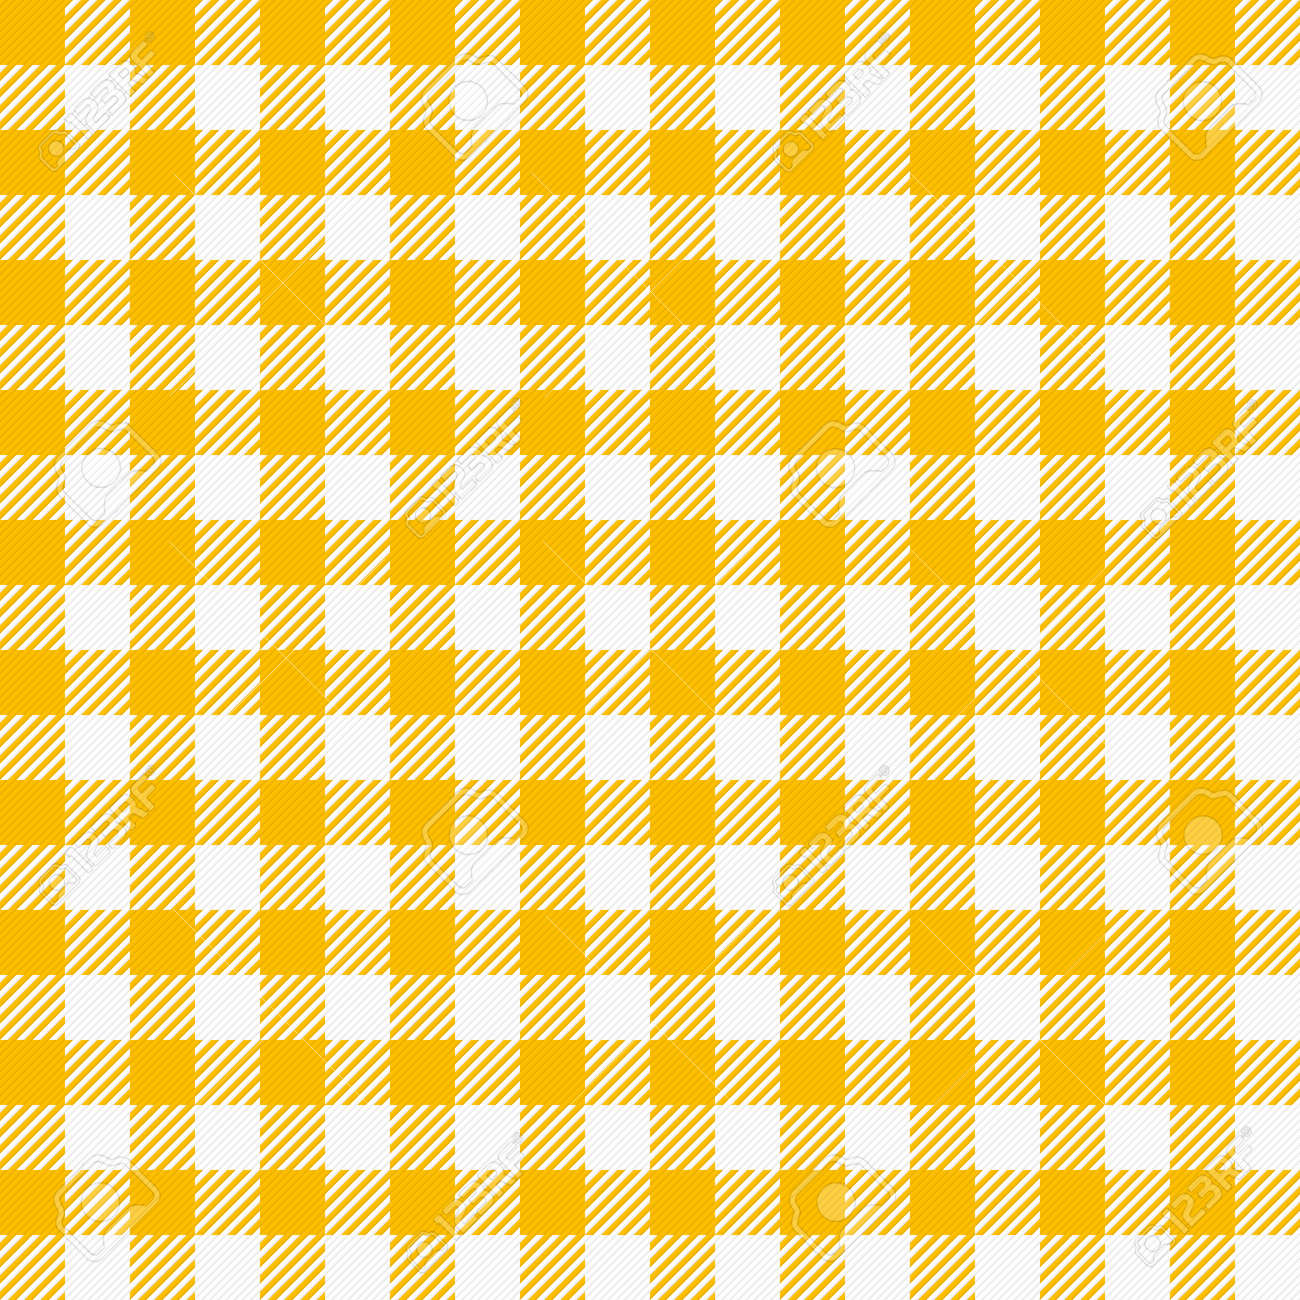 Merveilleux Seamless Checkered Tablecloth. Traditional Gingham Pattern, Checkered  Fabric, Tablecloth Texture Stock Vector